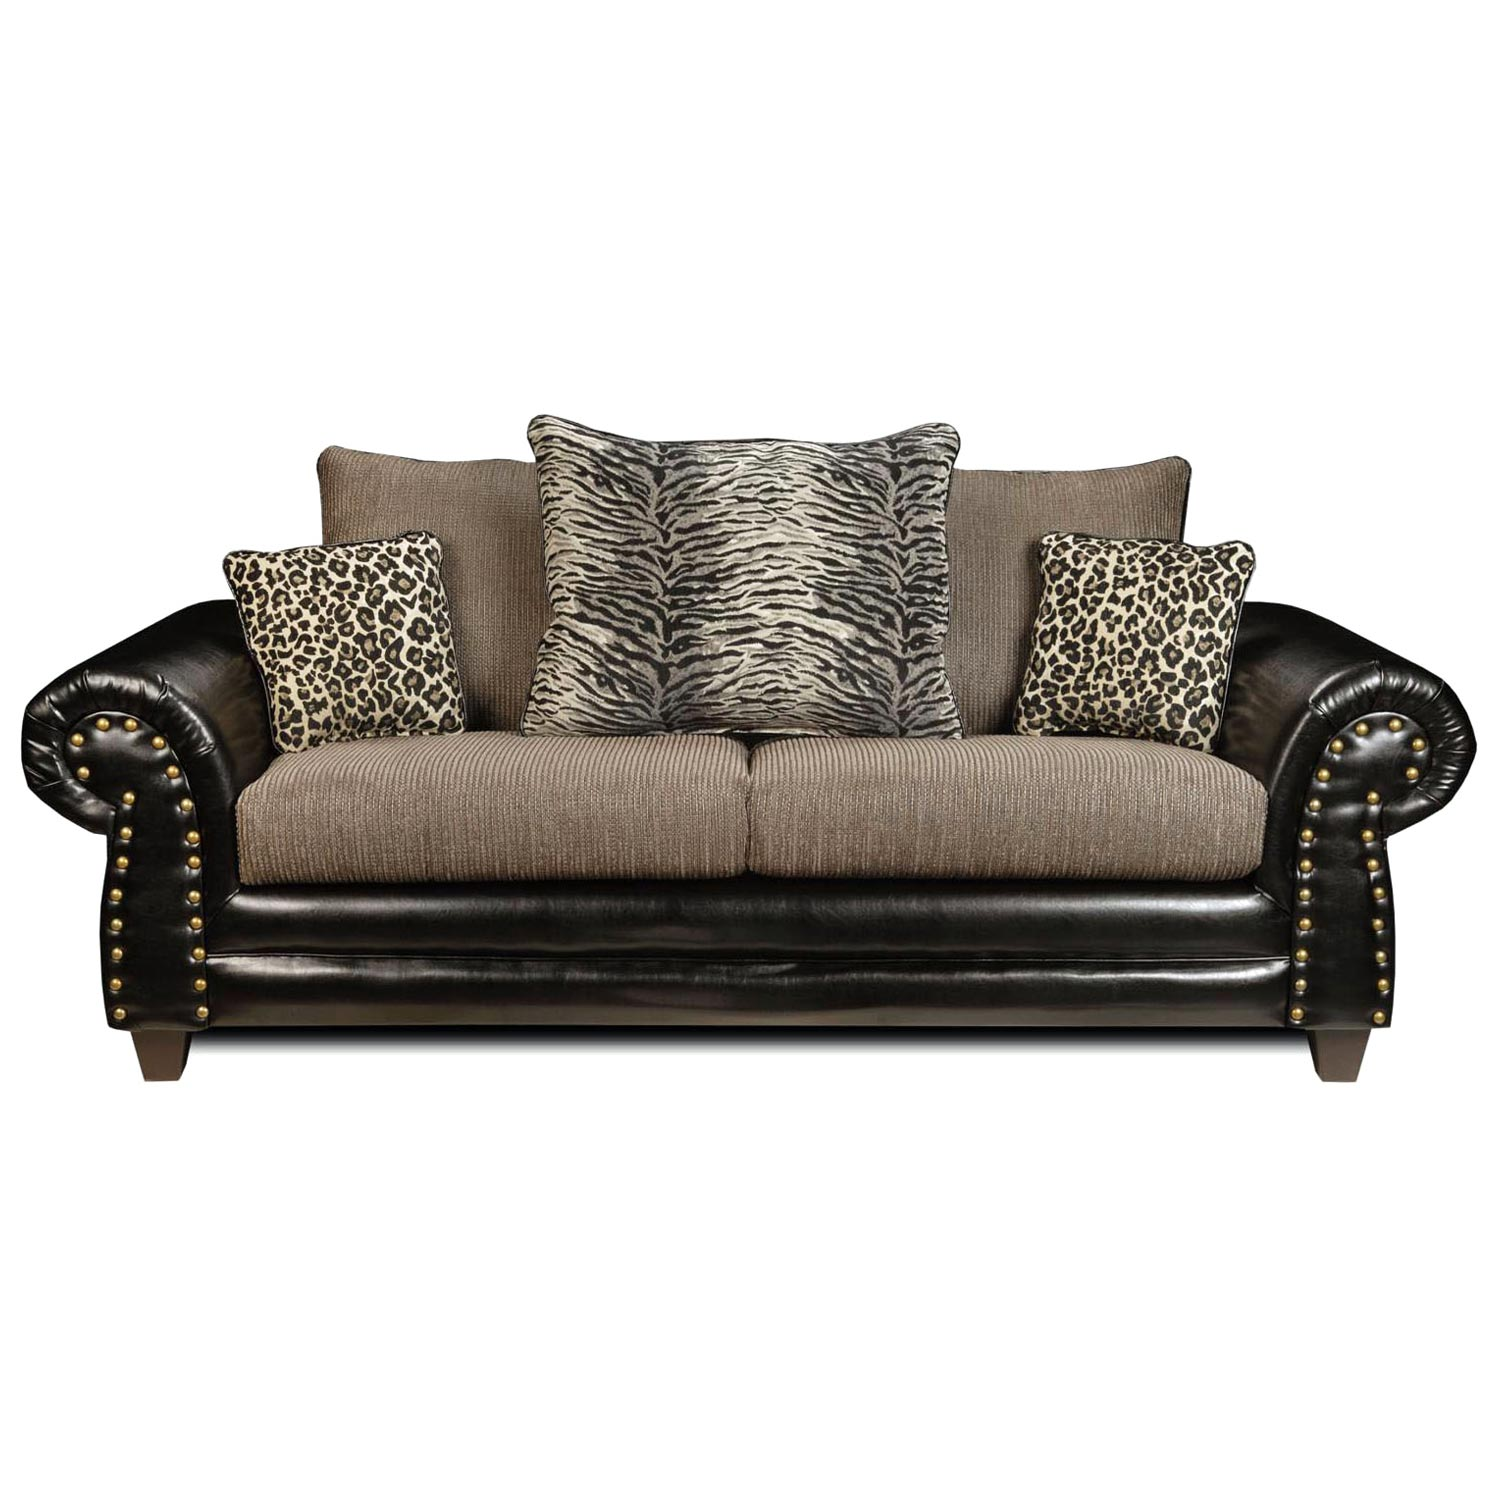 Animal Print Pillows Couch : Colbie Transitional Sofa - Leopard & Tiger Print Pillows DCG Stores